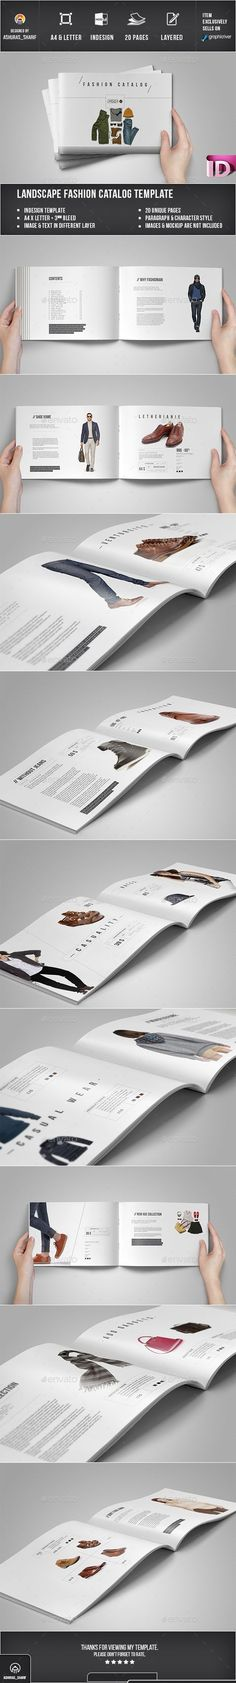 Product Catalog — InDesign INDD #sale #catalog • Available here → https://graphicriver.net/item/product-catalog/16492297?ref=pxcr